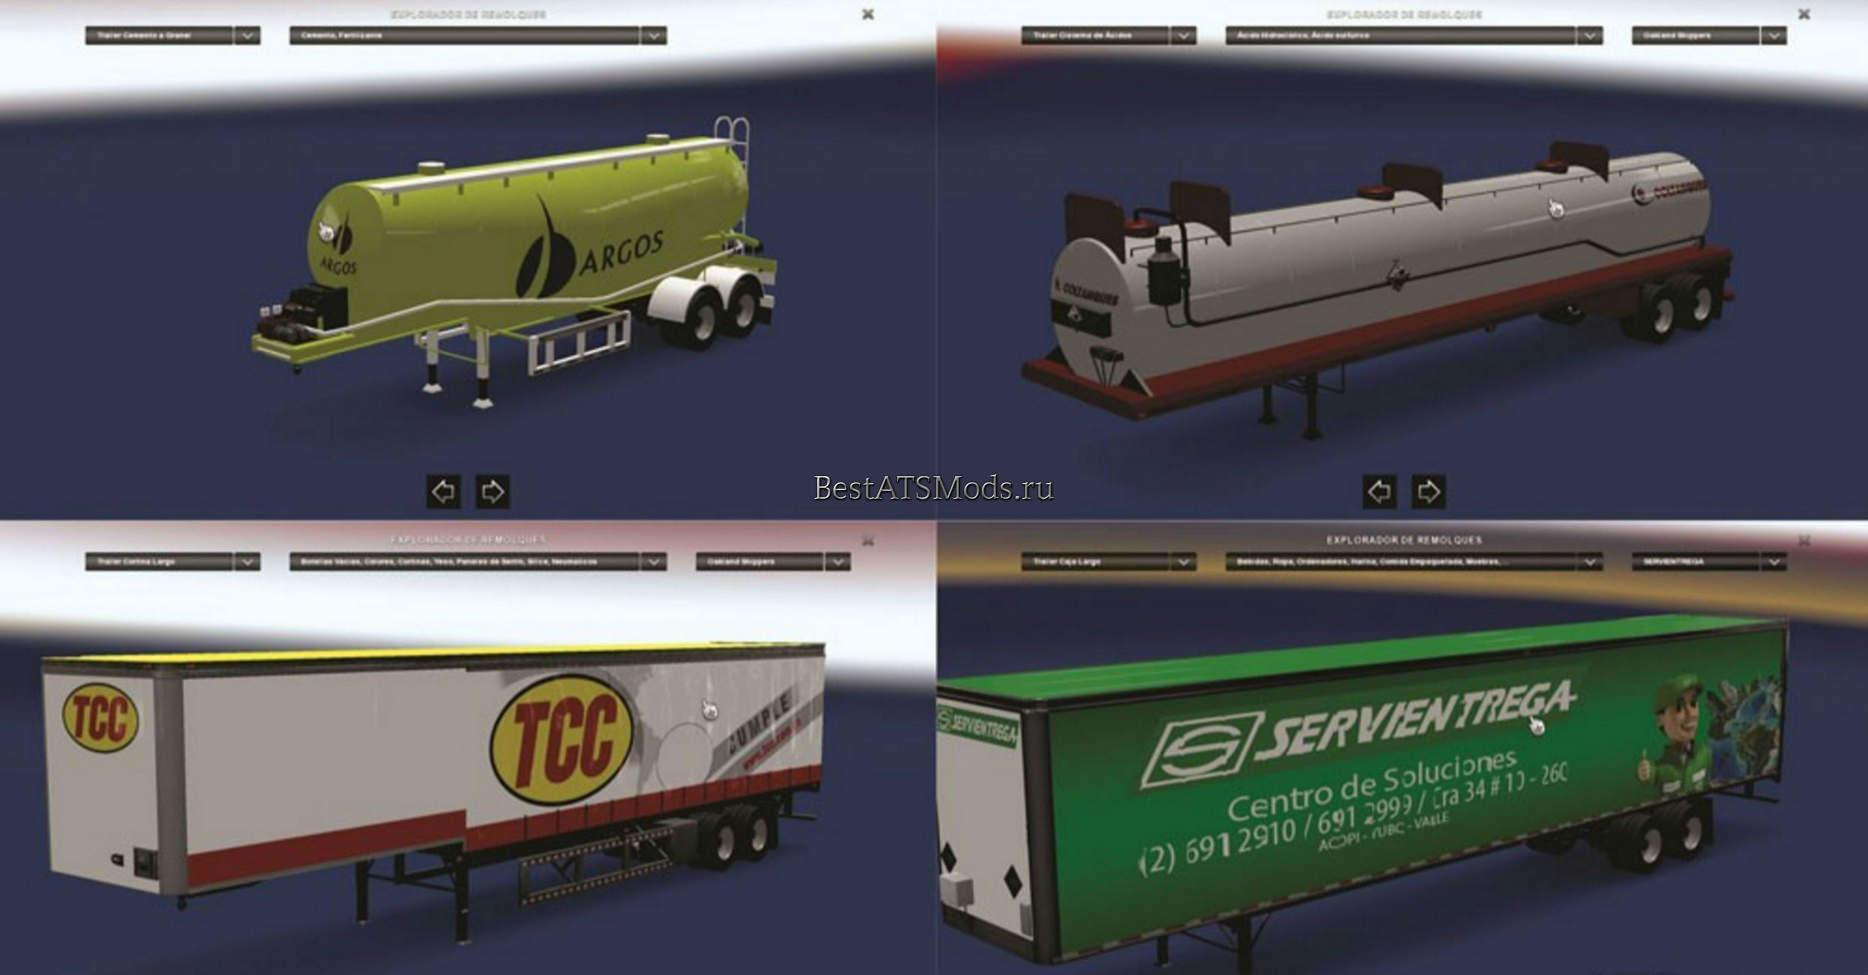 rsz_Мод_пак_скины_для_трейлеров_colombianas_companies_trailers_skin_pack_for_american_truck_simulator